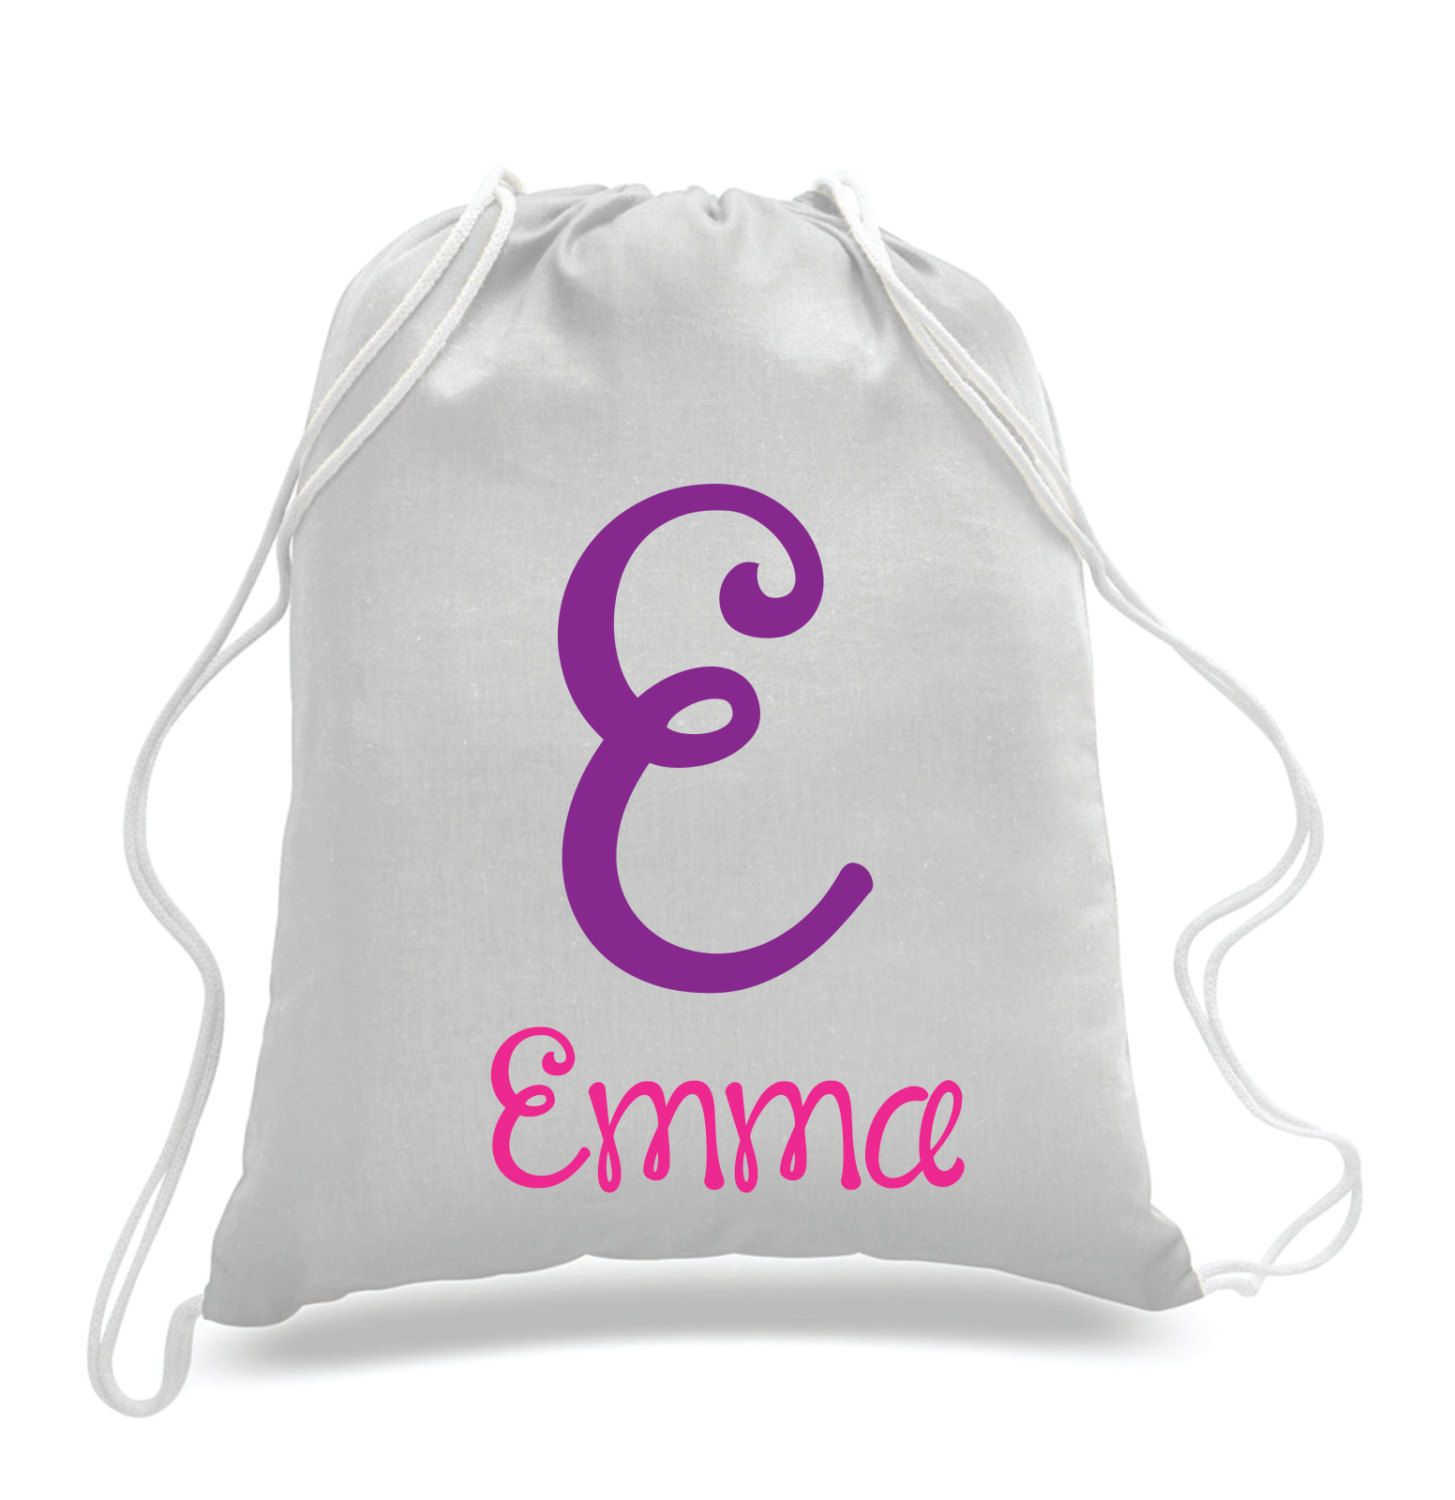 Personalized Monogrammed- Kids drawstring bags, gym bags ...